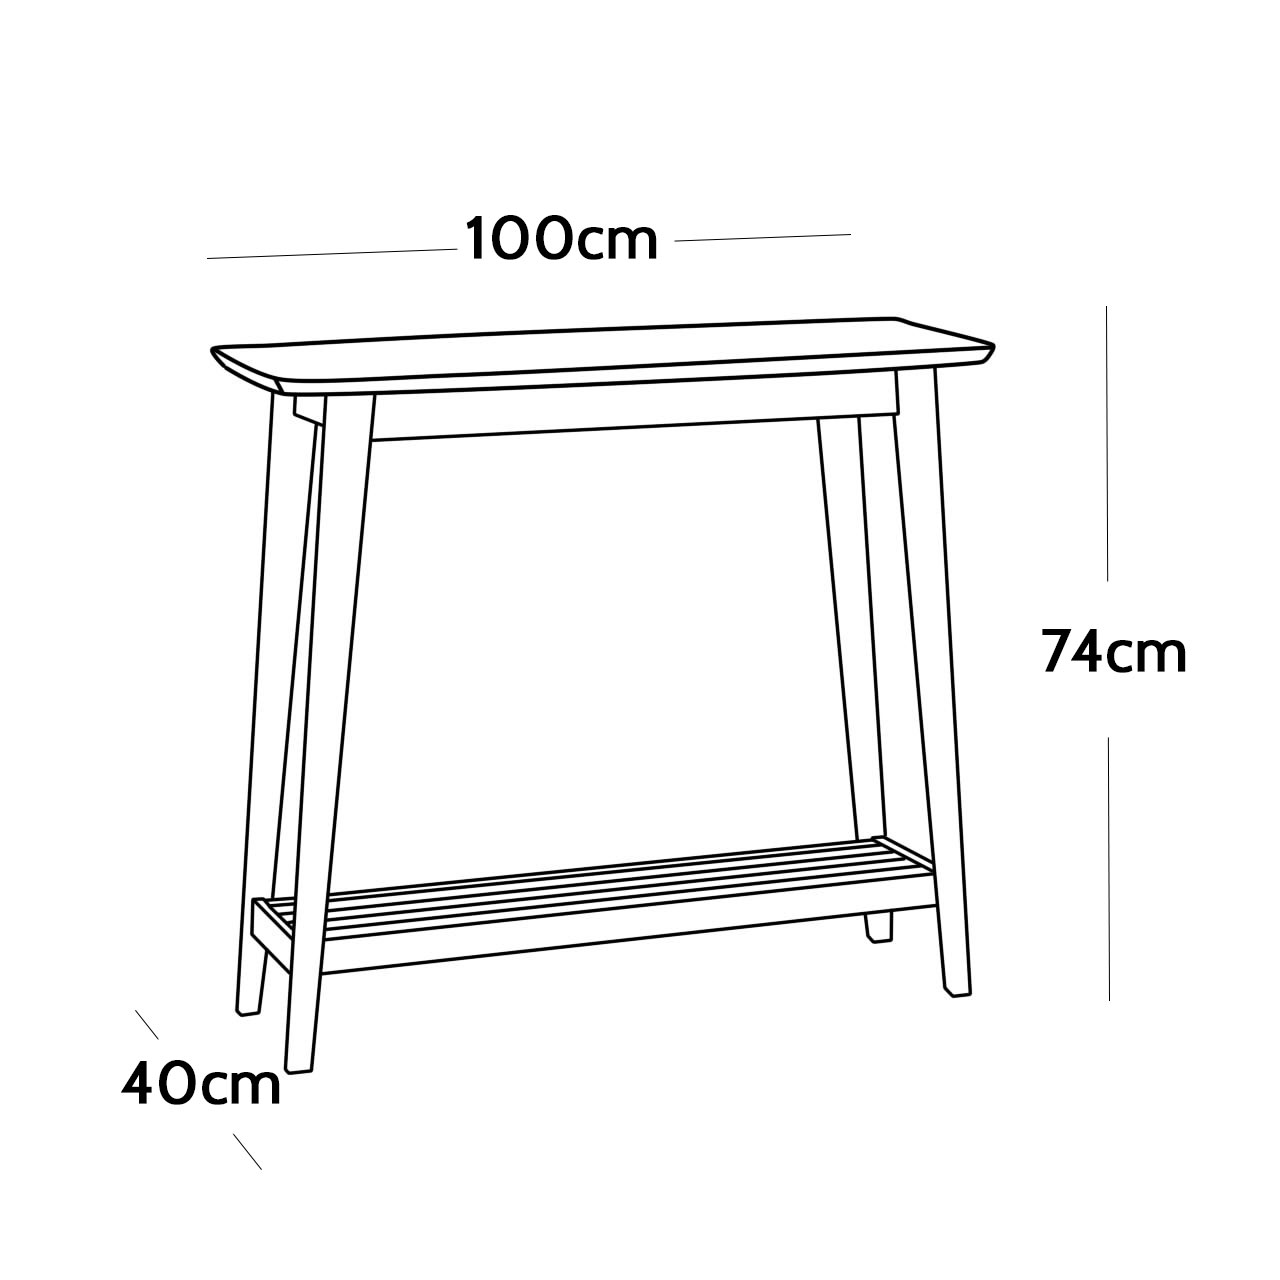 Tadeas Console Table Furniture Store Manila Philippines  : ORLANDO console LINE from www.urbanconcepts.ph size 1280 x 1280 jpeg 70kB